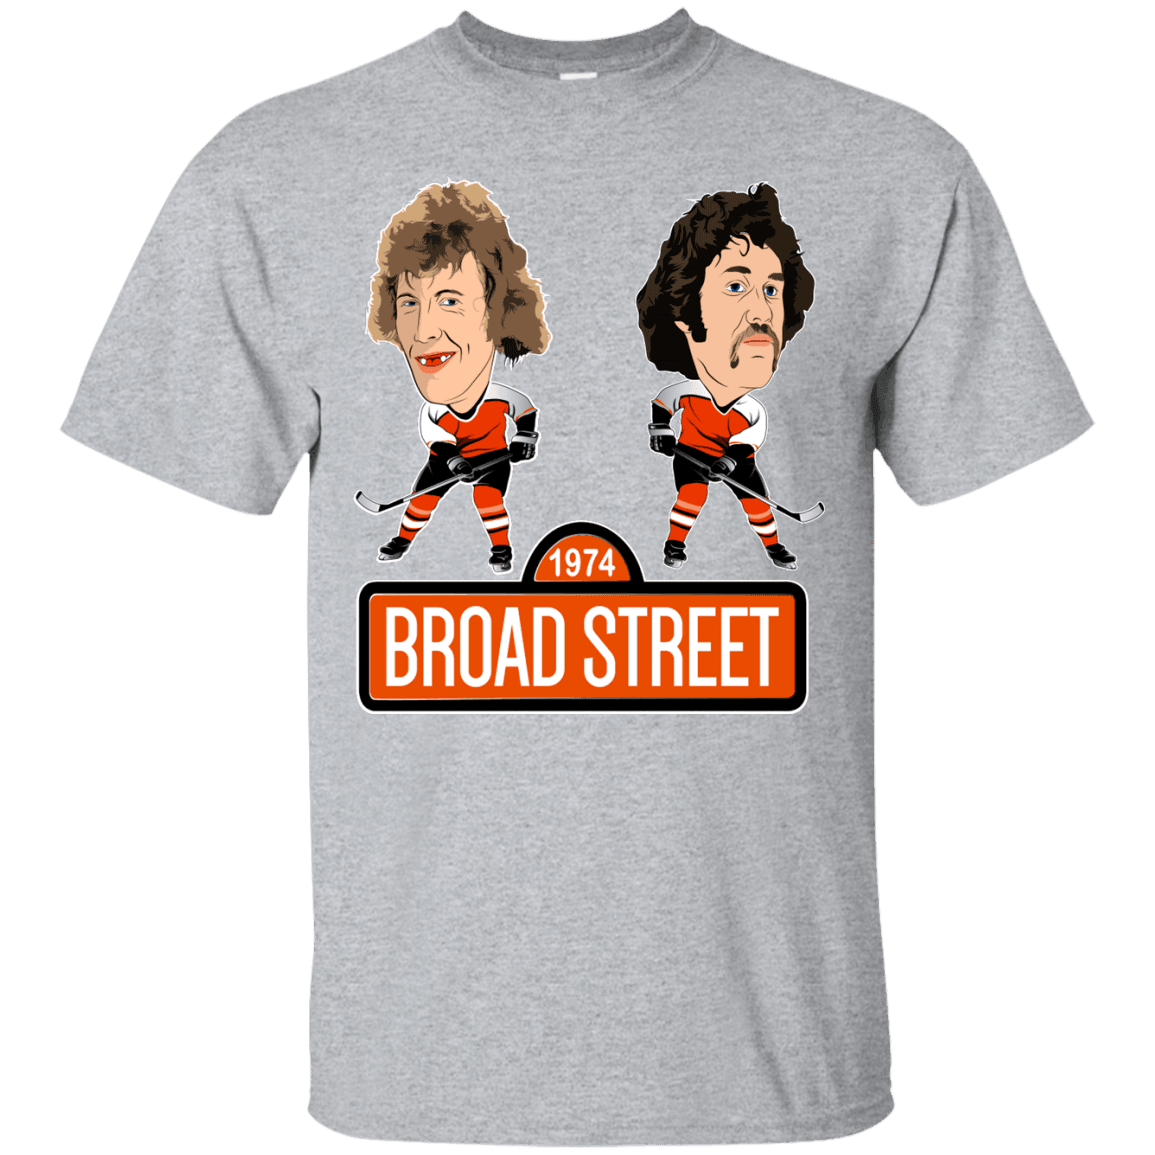 1974 Broad Street Custom Ultra Cotton T-Shirt - Generation T